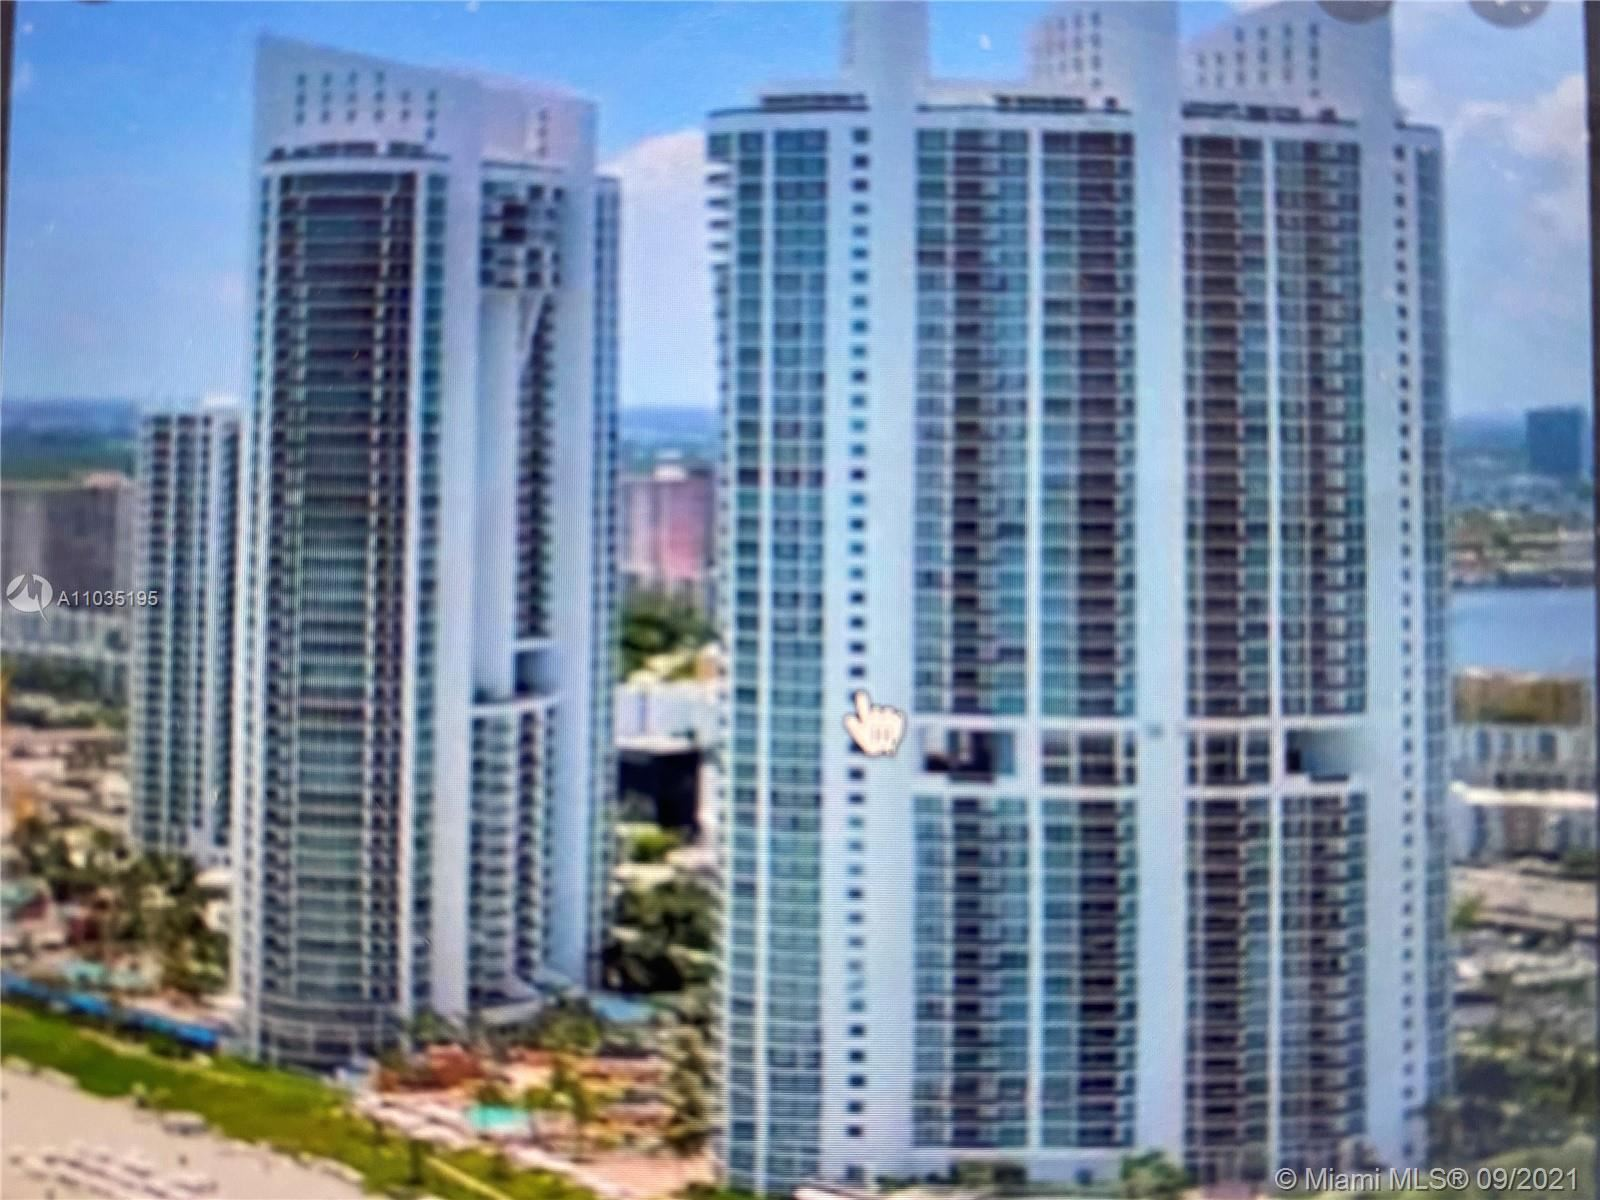 18201 Collins Ave #3607, Sunny Isles, FL 33160 - #: A11035195